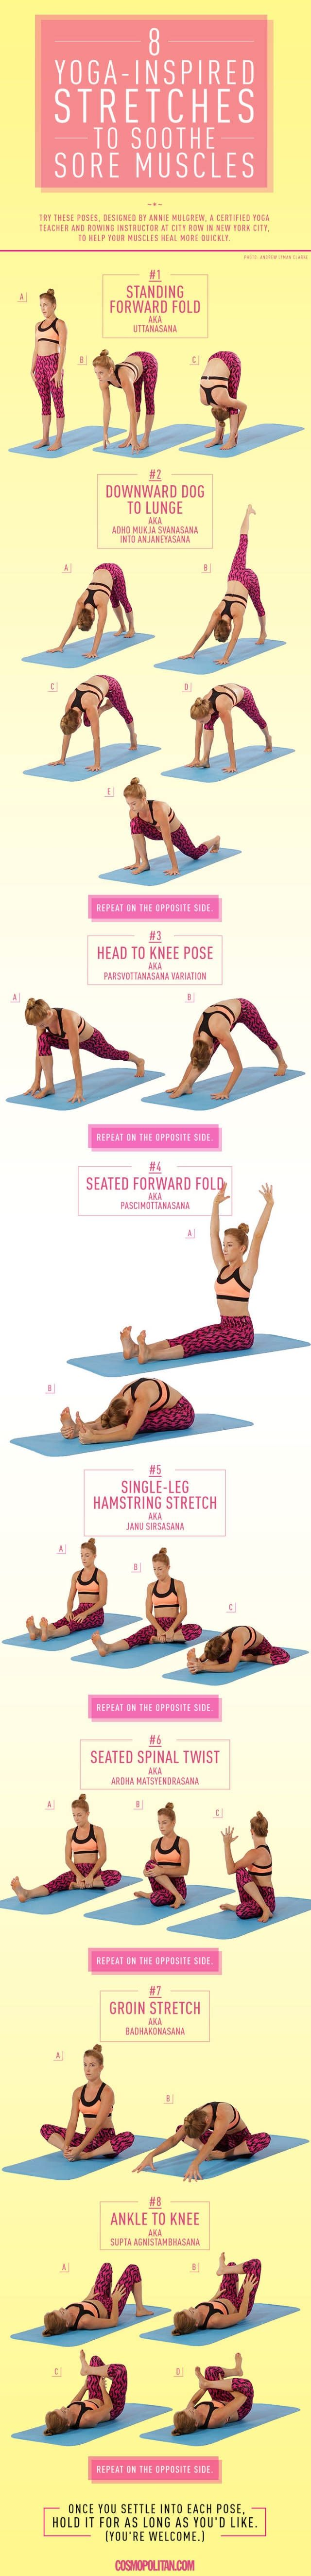 Say hello to yoga for sore muscles. Transform yourself